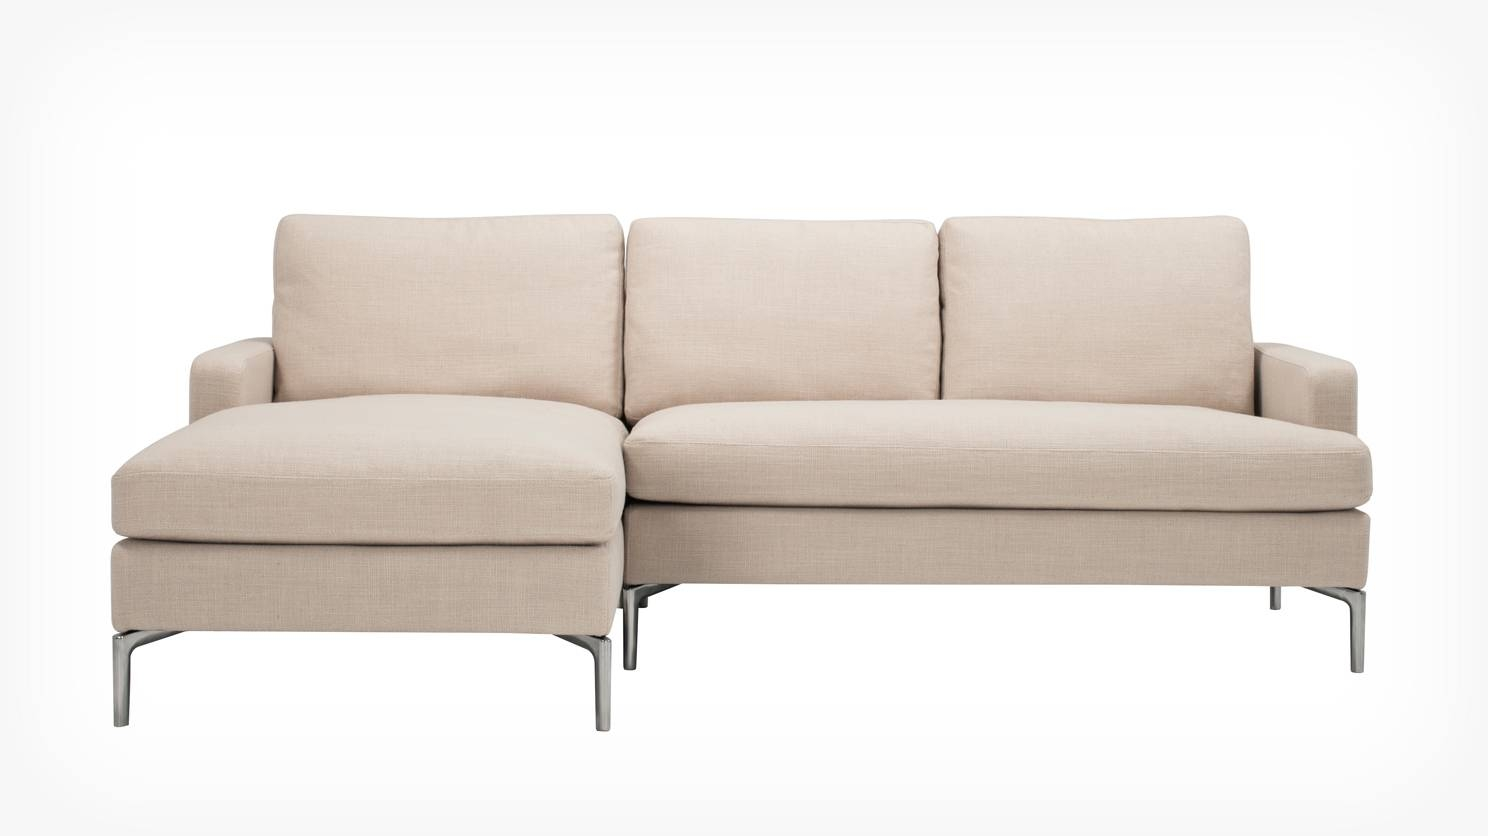 3 Pieces Small Sectional Beige Sofa With Chaise And Skinny Chrome inside Sofas With Chrome Legs (Image 1 of 15)